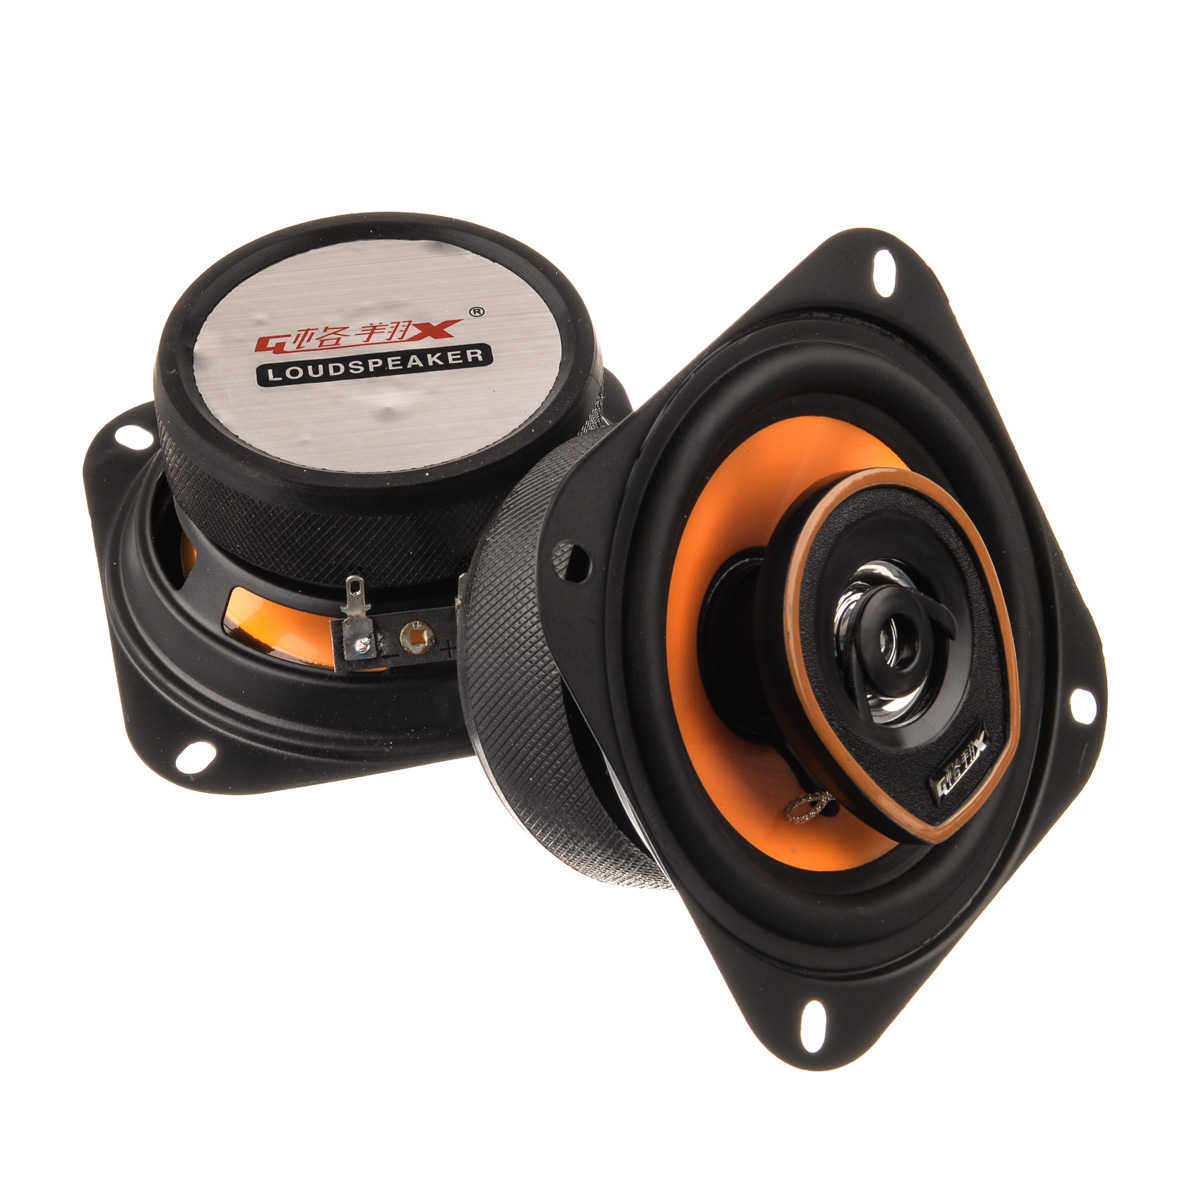 New 2x 5.5inch coaxial car speaker hot sale audio speaker universal all carperfect sound horn speakers YA163